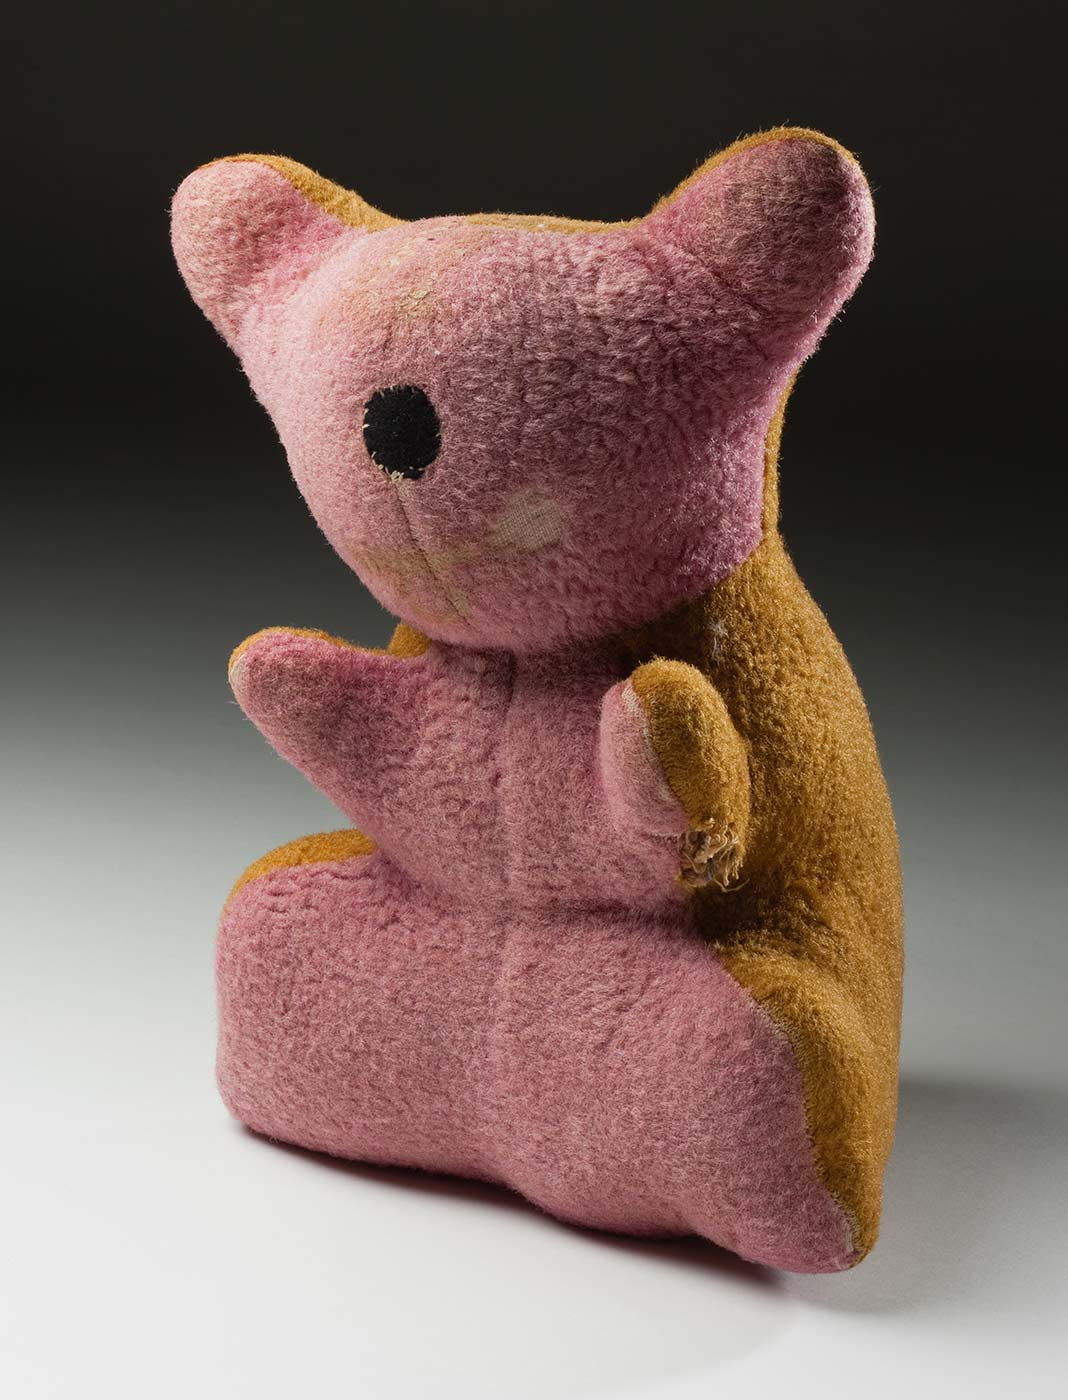 A small bear shaped like a koala, with pink plush fabric on the front and a mustard coloured plush on the back. It has a circular black felt nose with white hand stitching. The bear's left arm and part of its face are worn. - click to view larger image